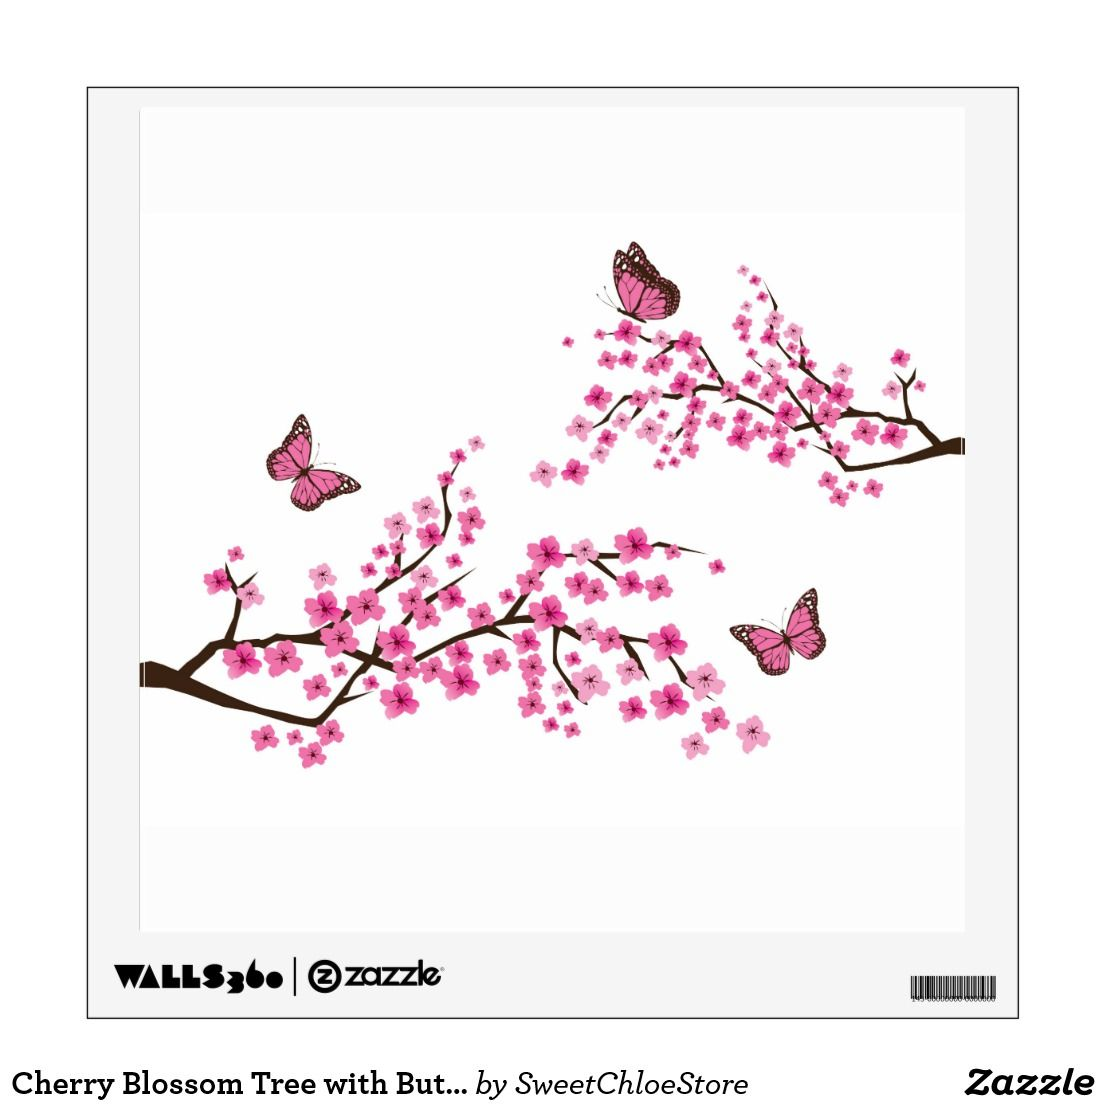 Cherry Blossom Tree With Butterflies Wall Decals Zazzle Com In 2021 Cherry Blossom Tree Tattoo Blossom Tree Tattoo Cherry Tree Tattoos